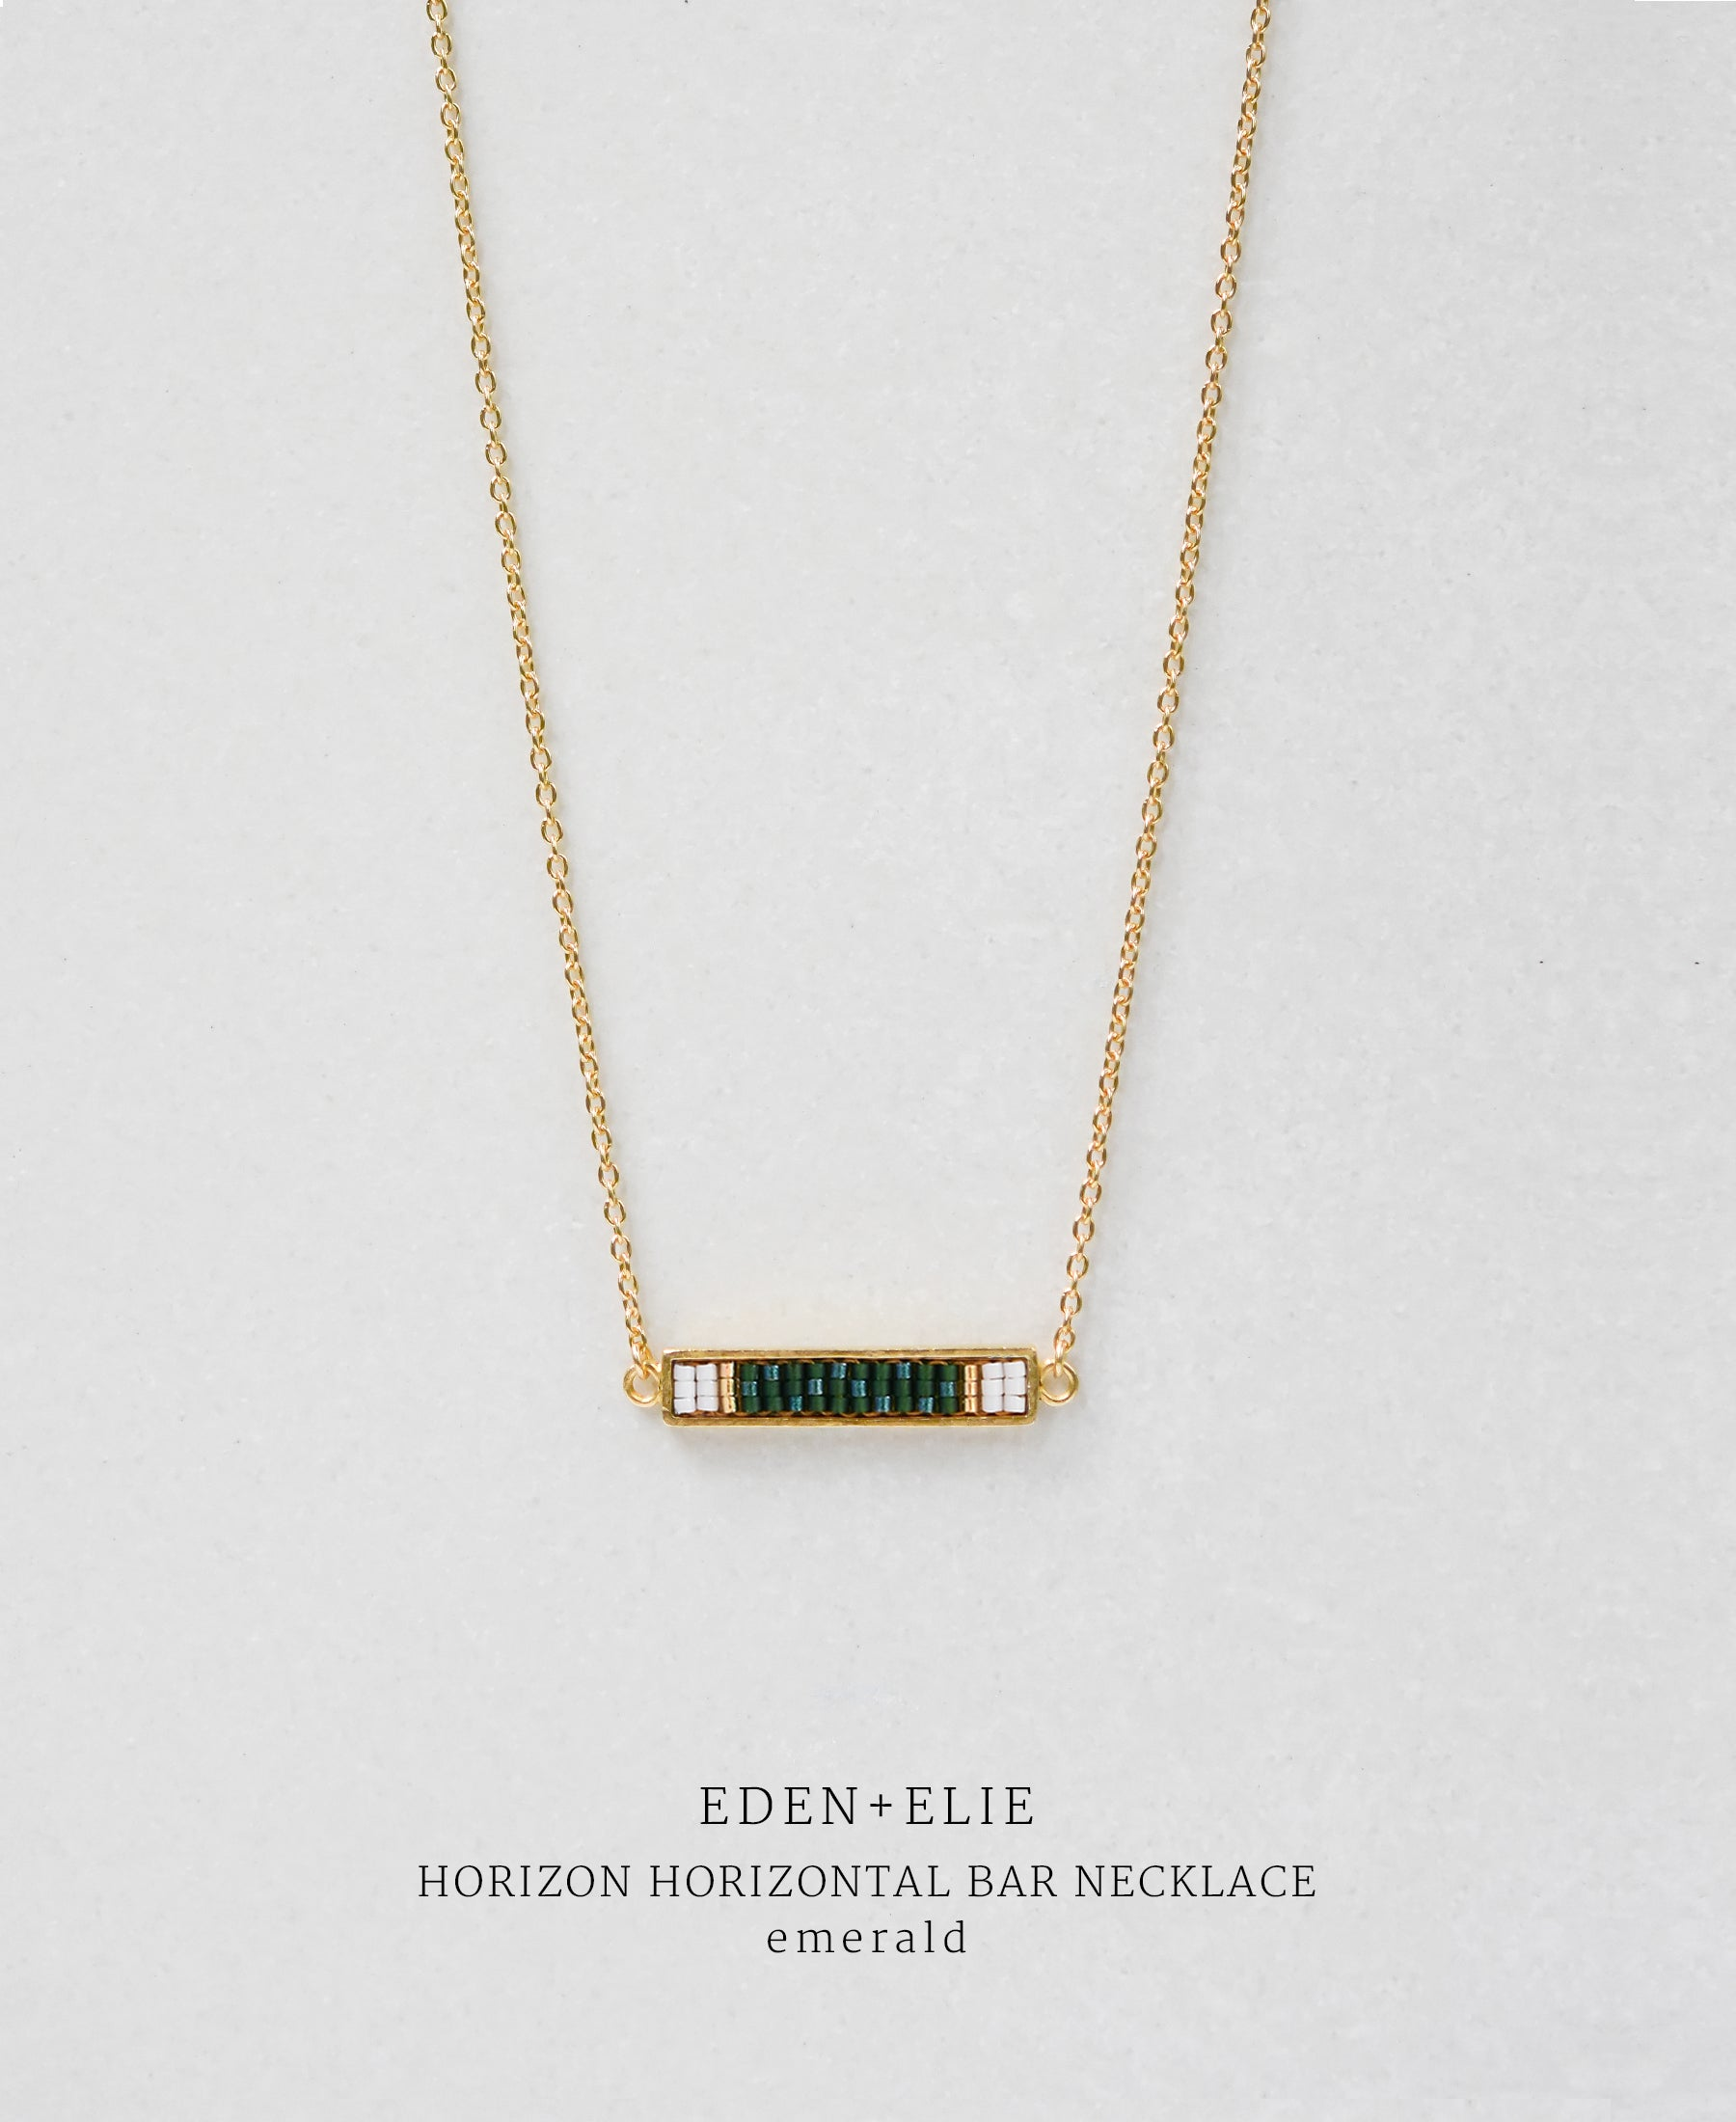 EDEN + ELIE Horizon Horizontal bar necklace - emerald green